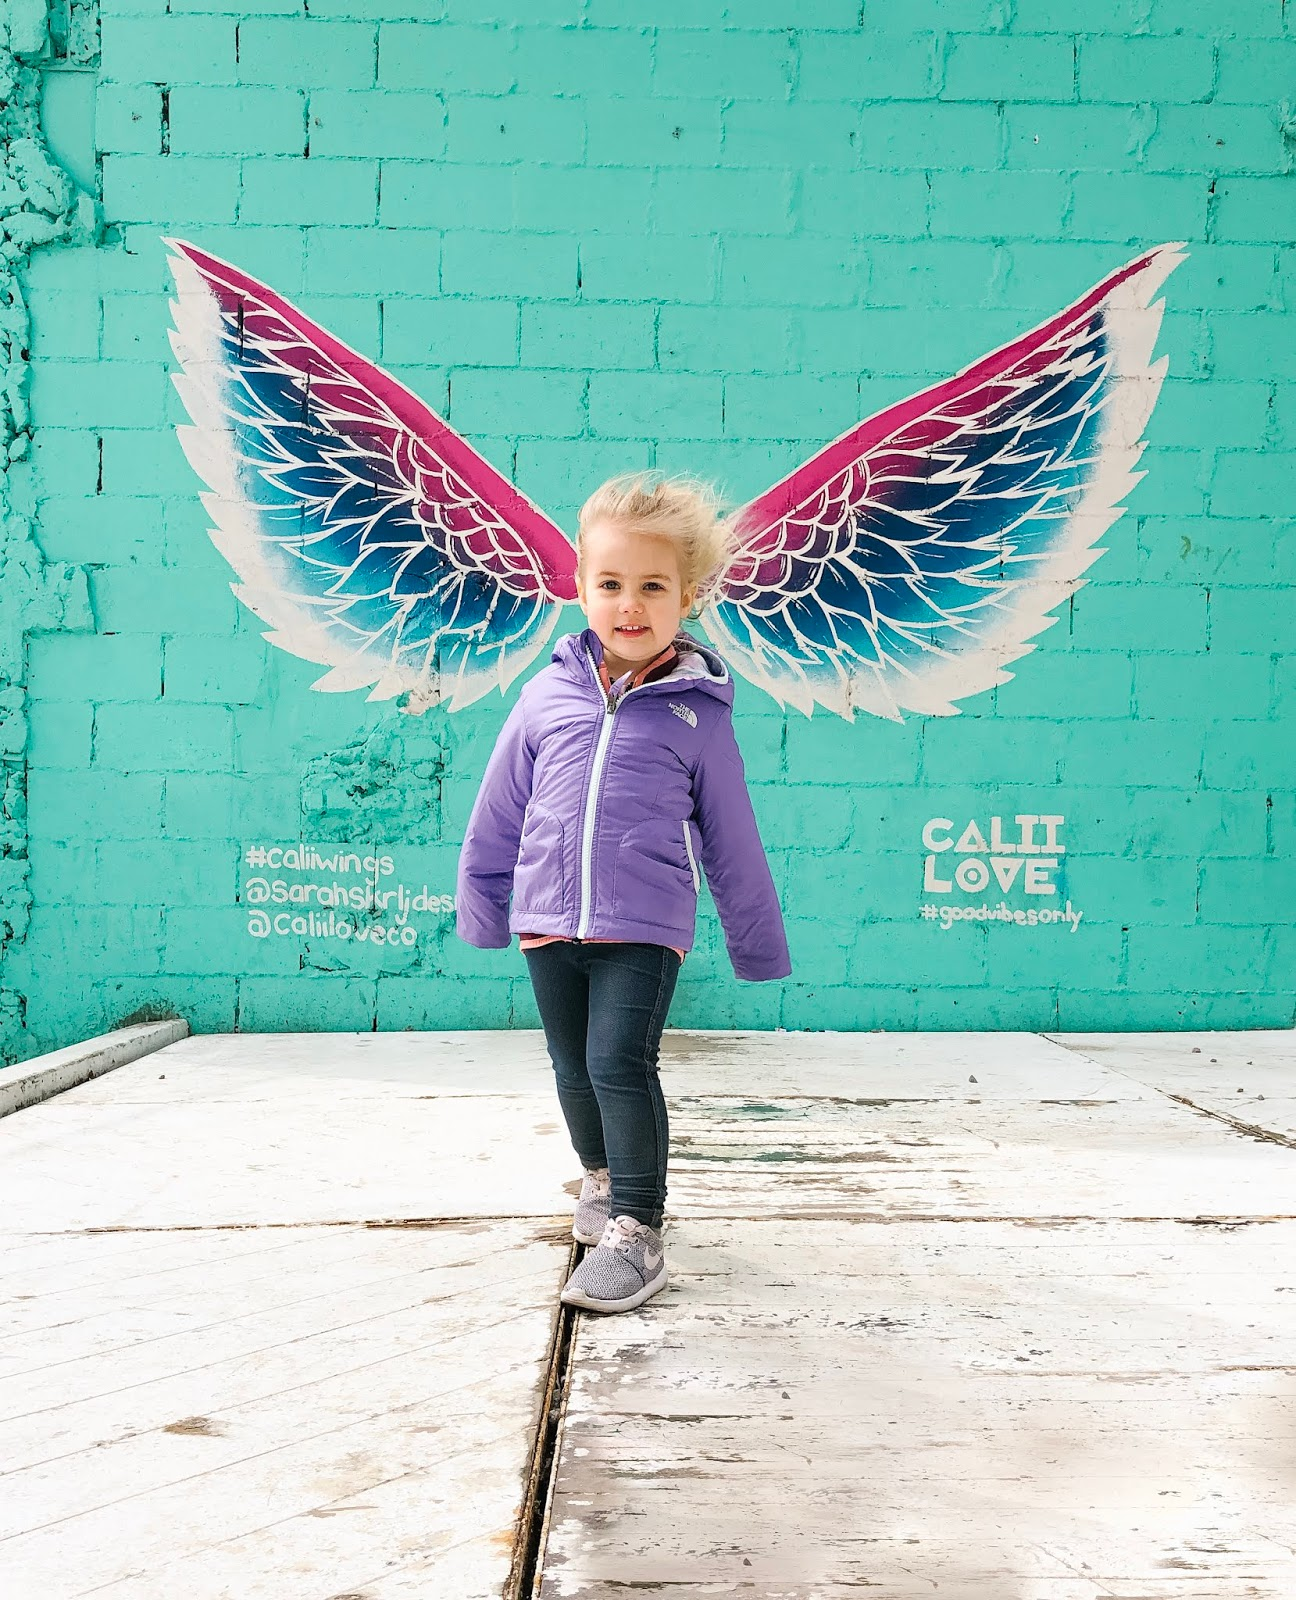 Calii Love angel wings mural